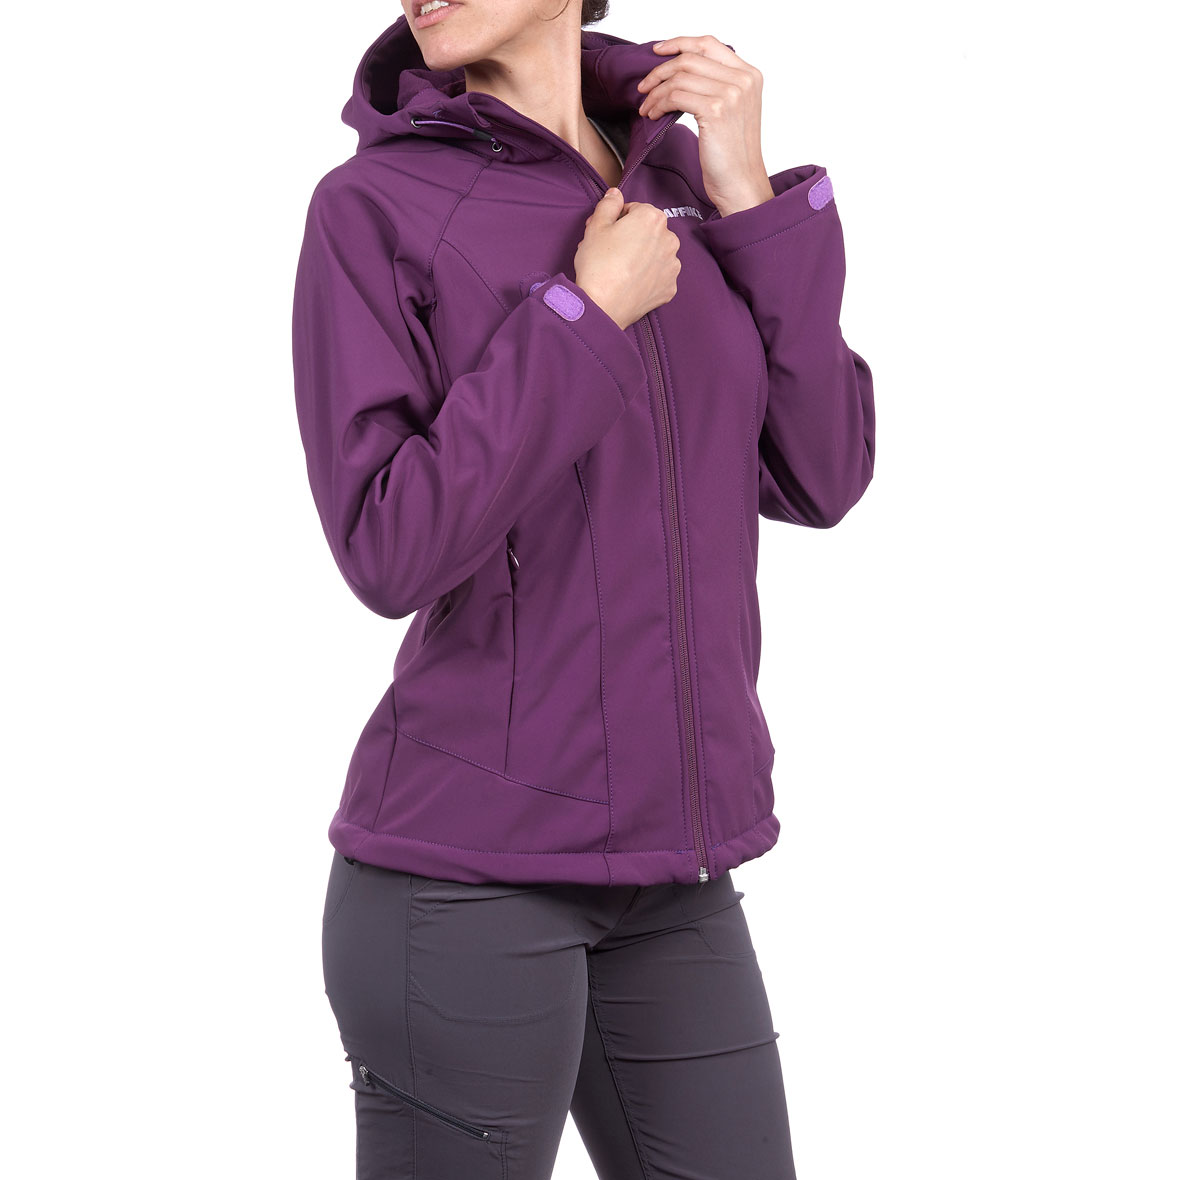 MG 8292 5SO50221210M Campera Absolut Violeta - Campera Absolut